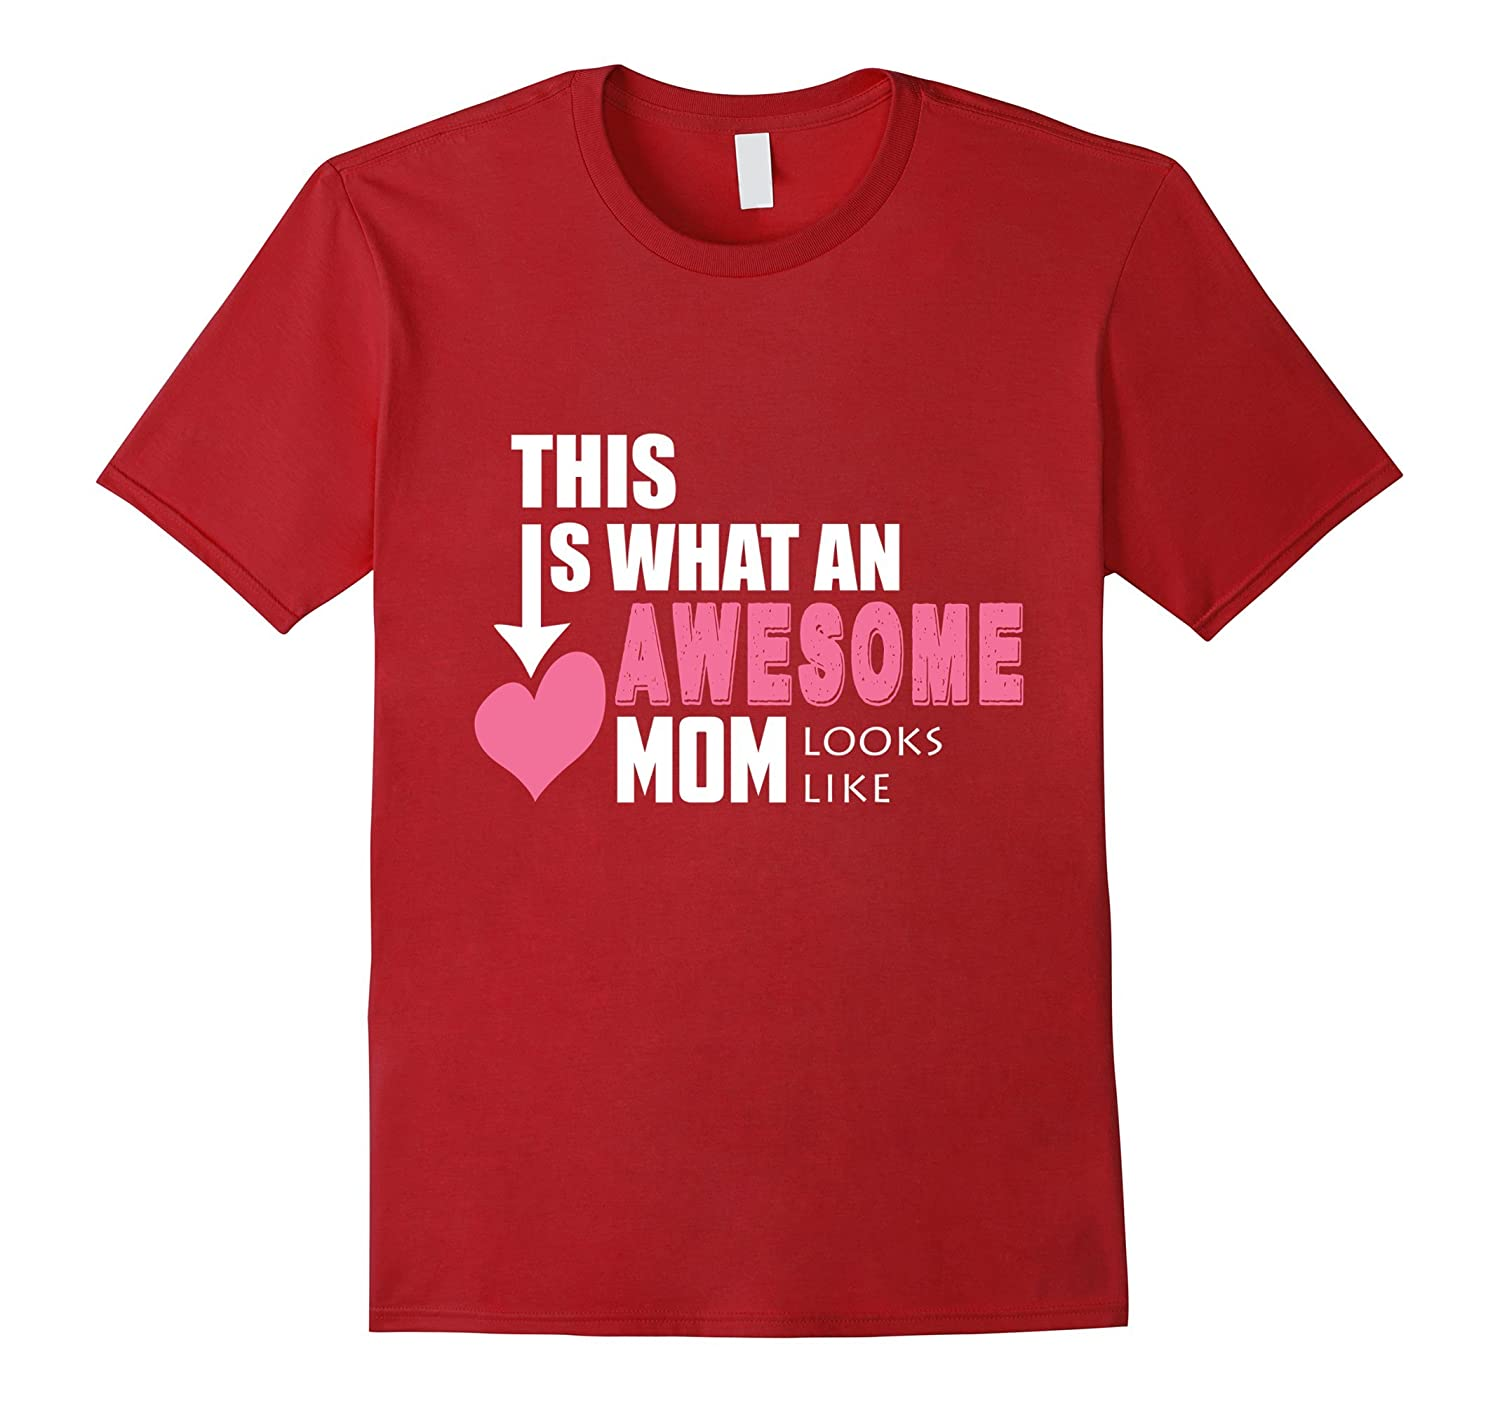 Awesome Mom Looks Like Funny Family T shirt for MotherMama-TH